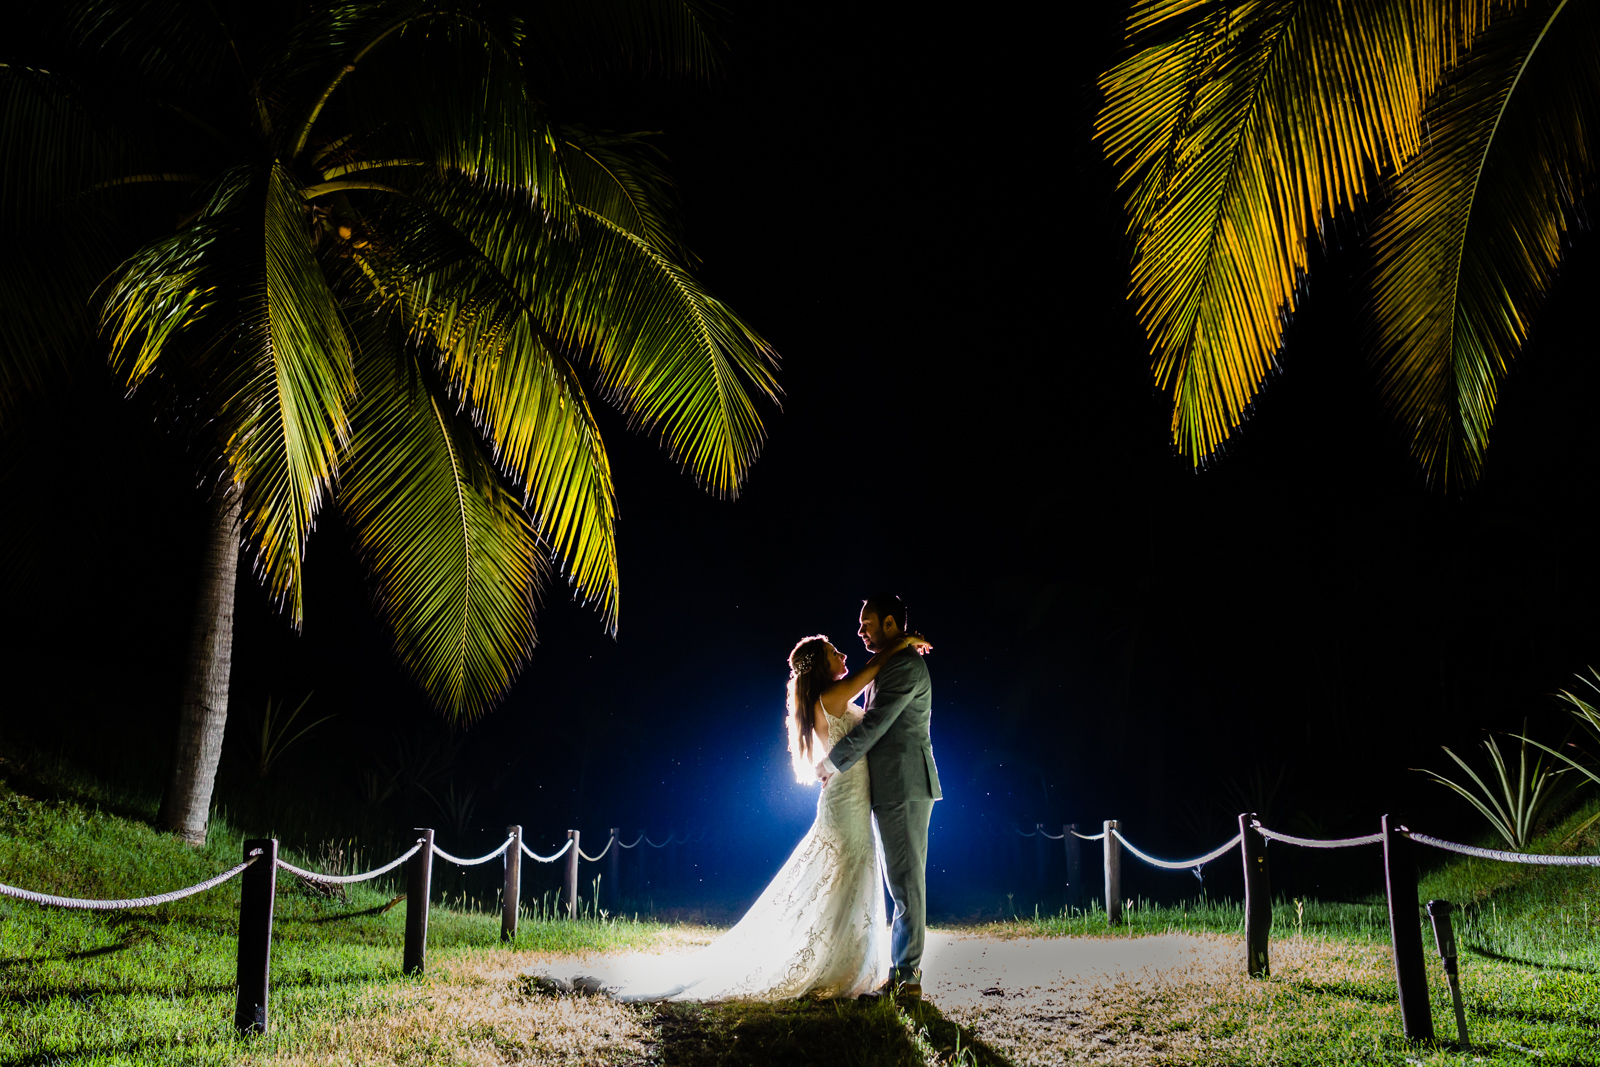 bride and groom with a back light on a garden